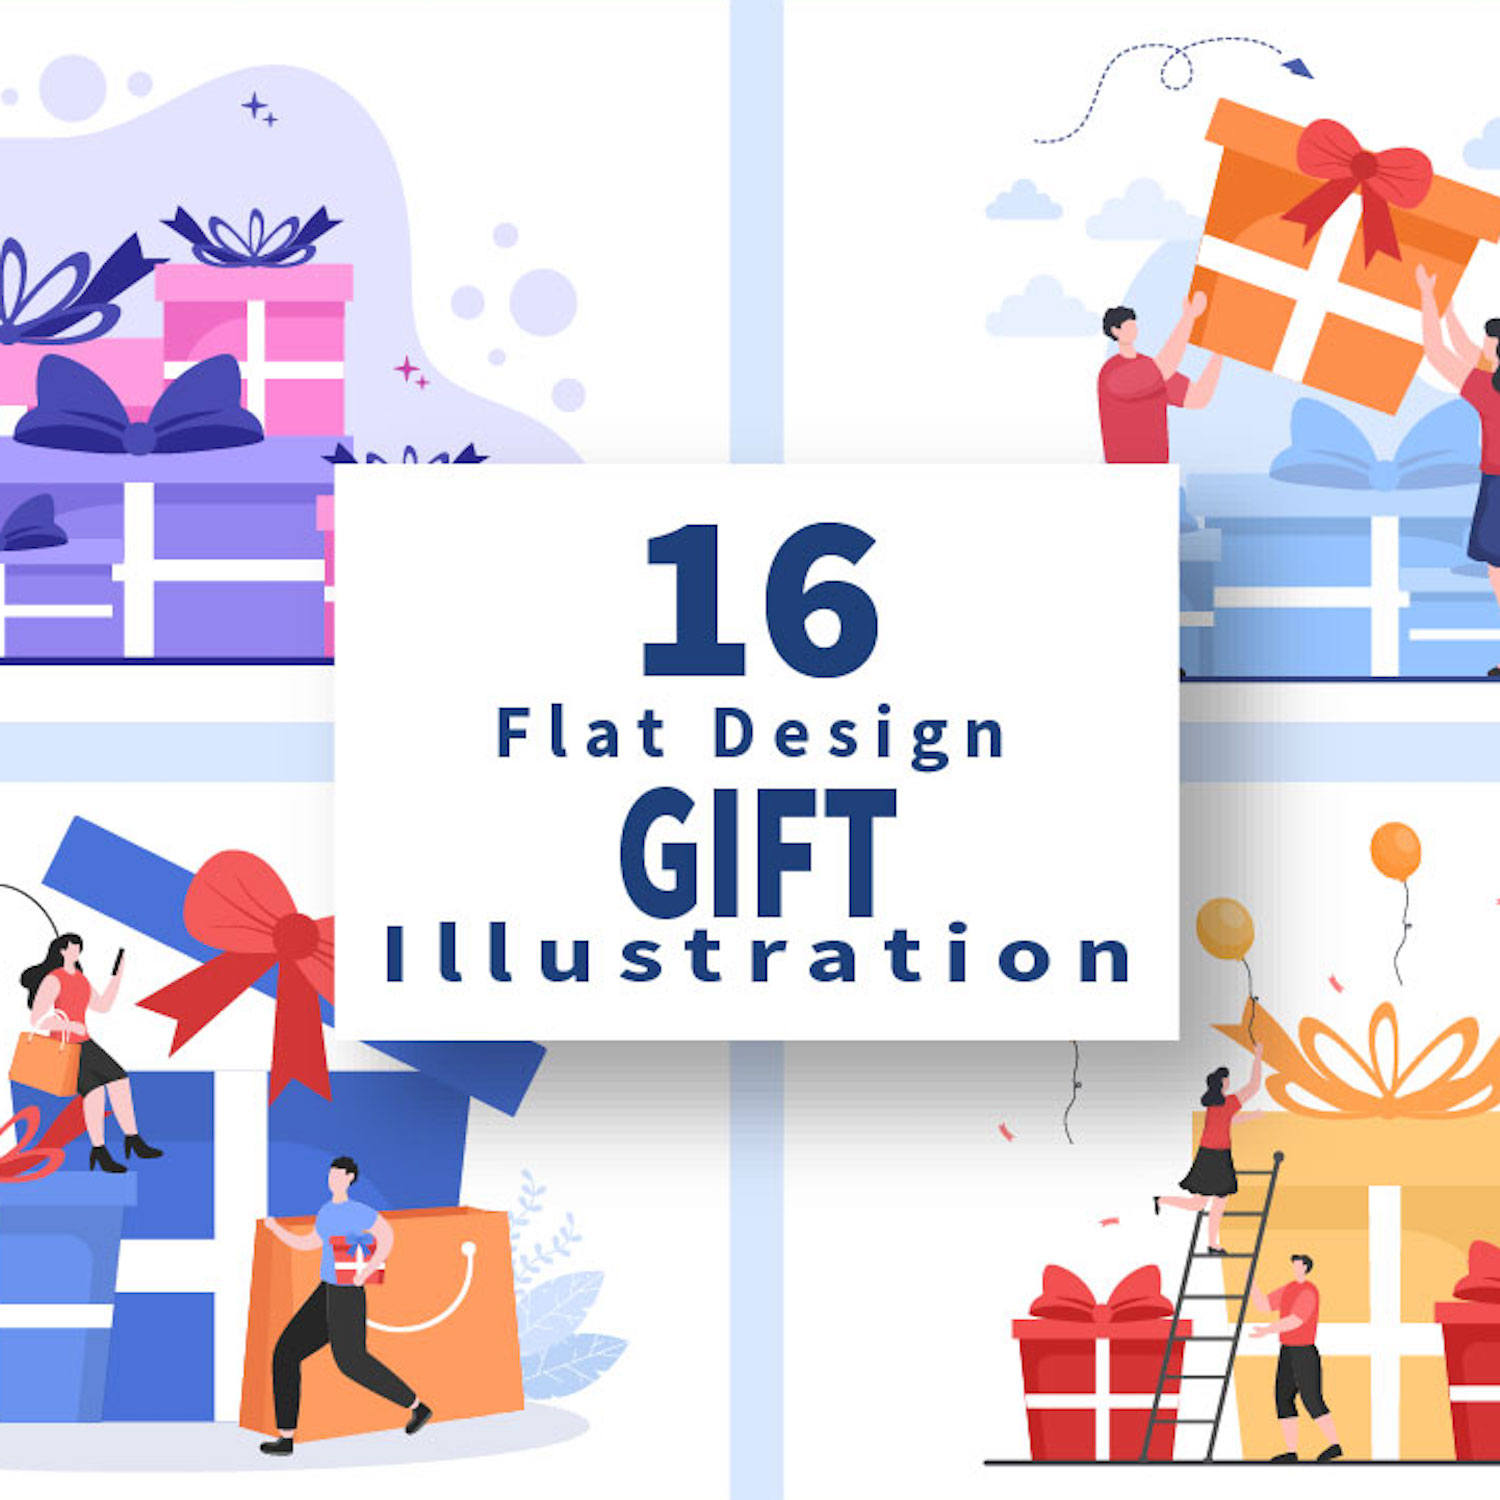 16 Colorful Wrapped Gift Box Online Delivery Illustrations cover image.